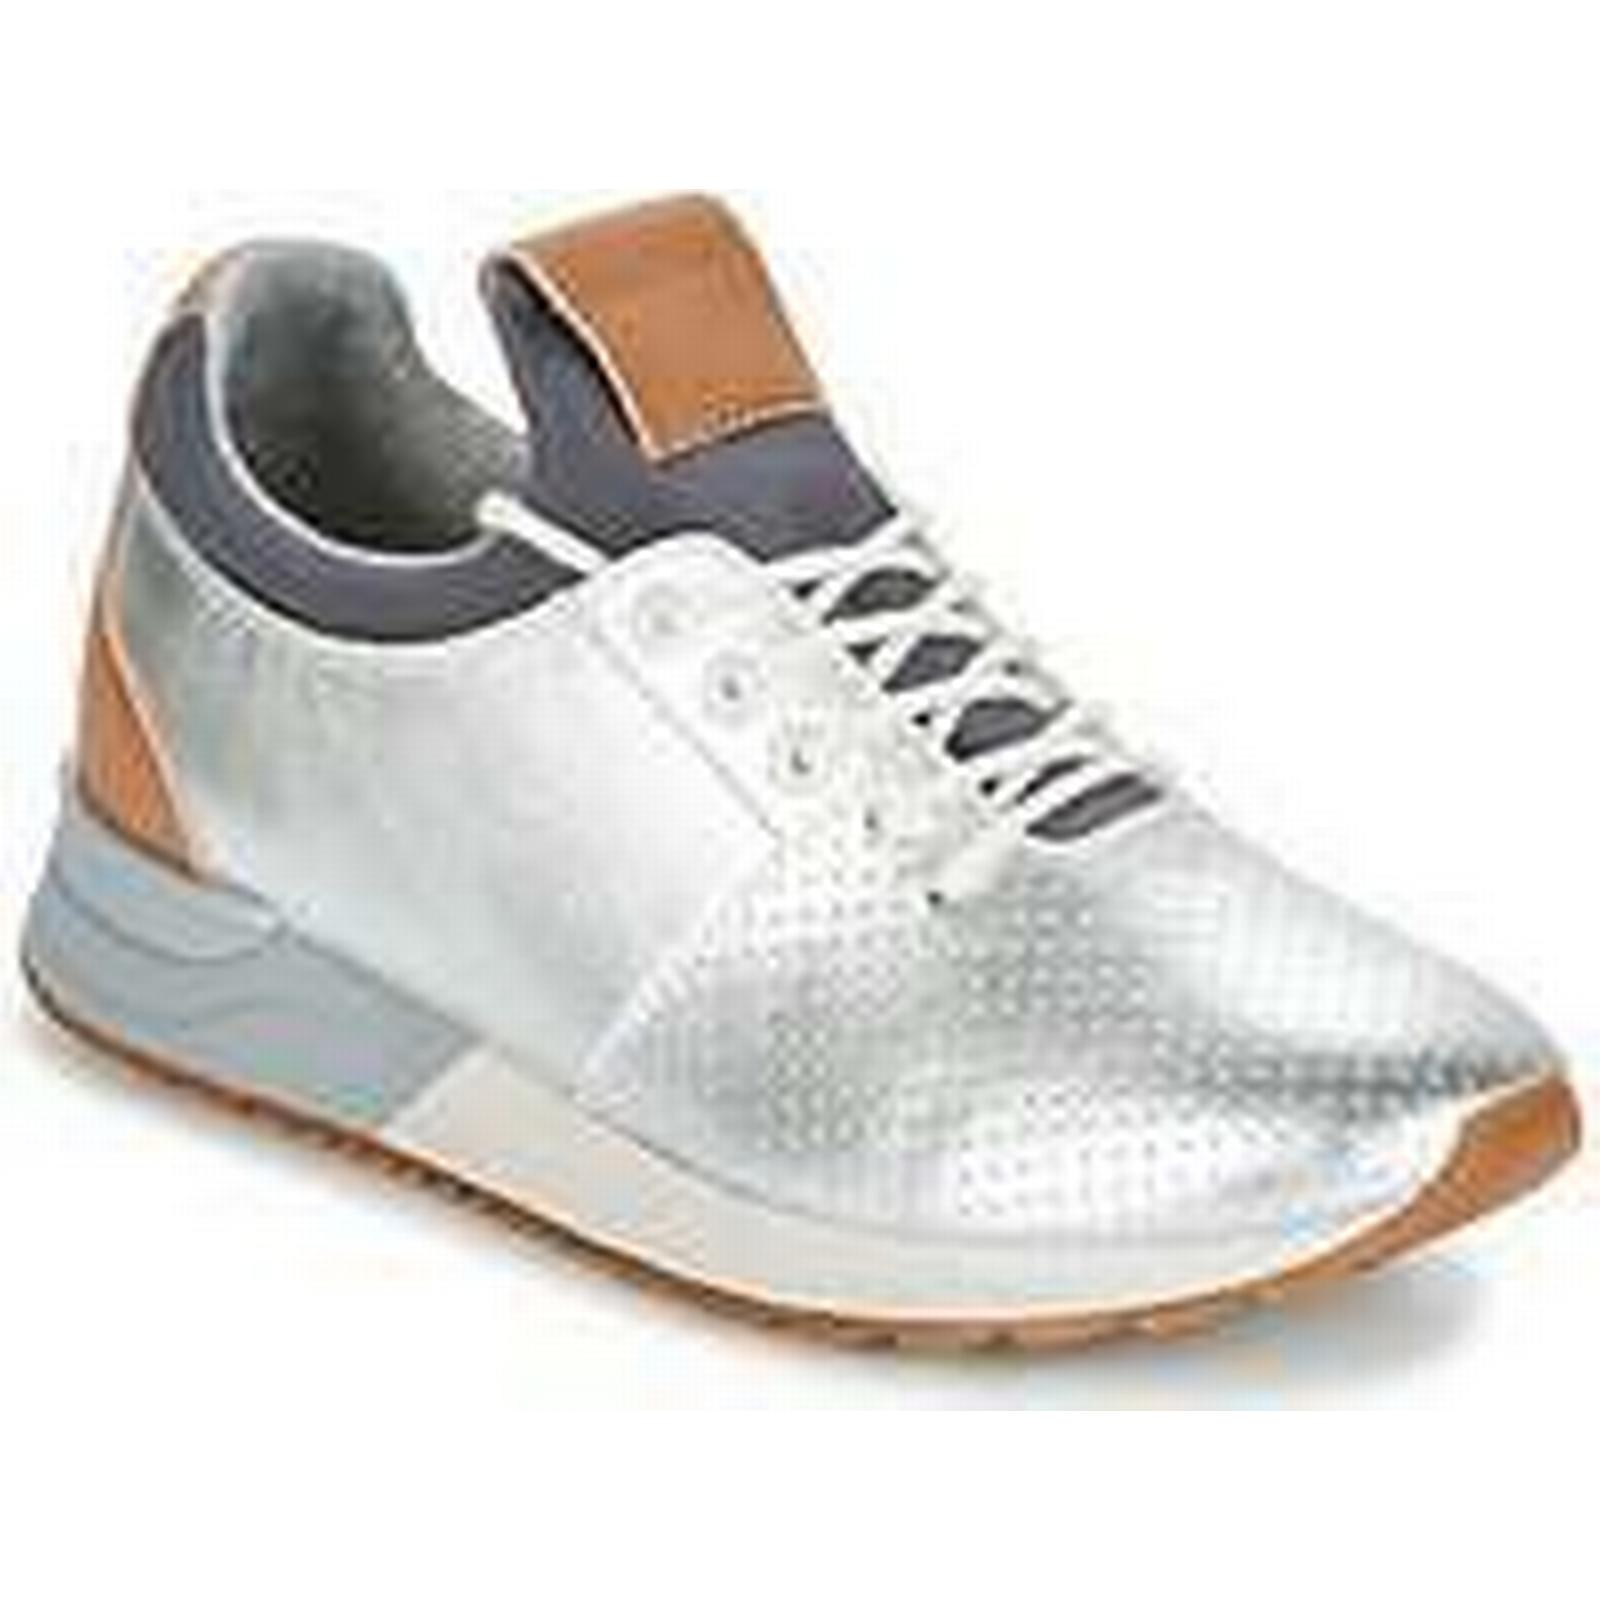 Spartoo.co.uk Marc O'Polo (Trainers) GIRONA 6 women's Shoes (Trainers) O'Polo in Silver 165a7d